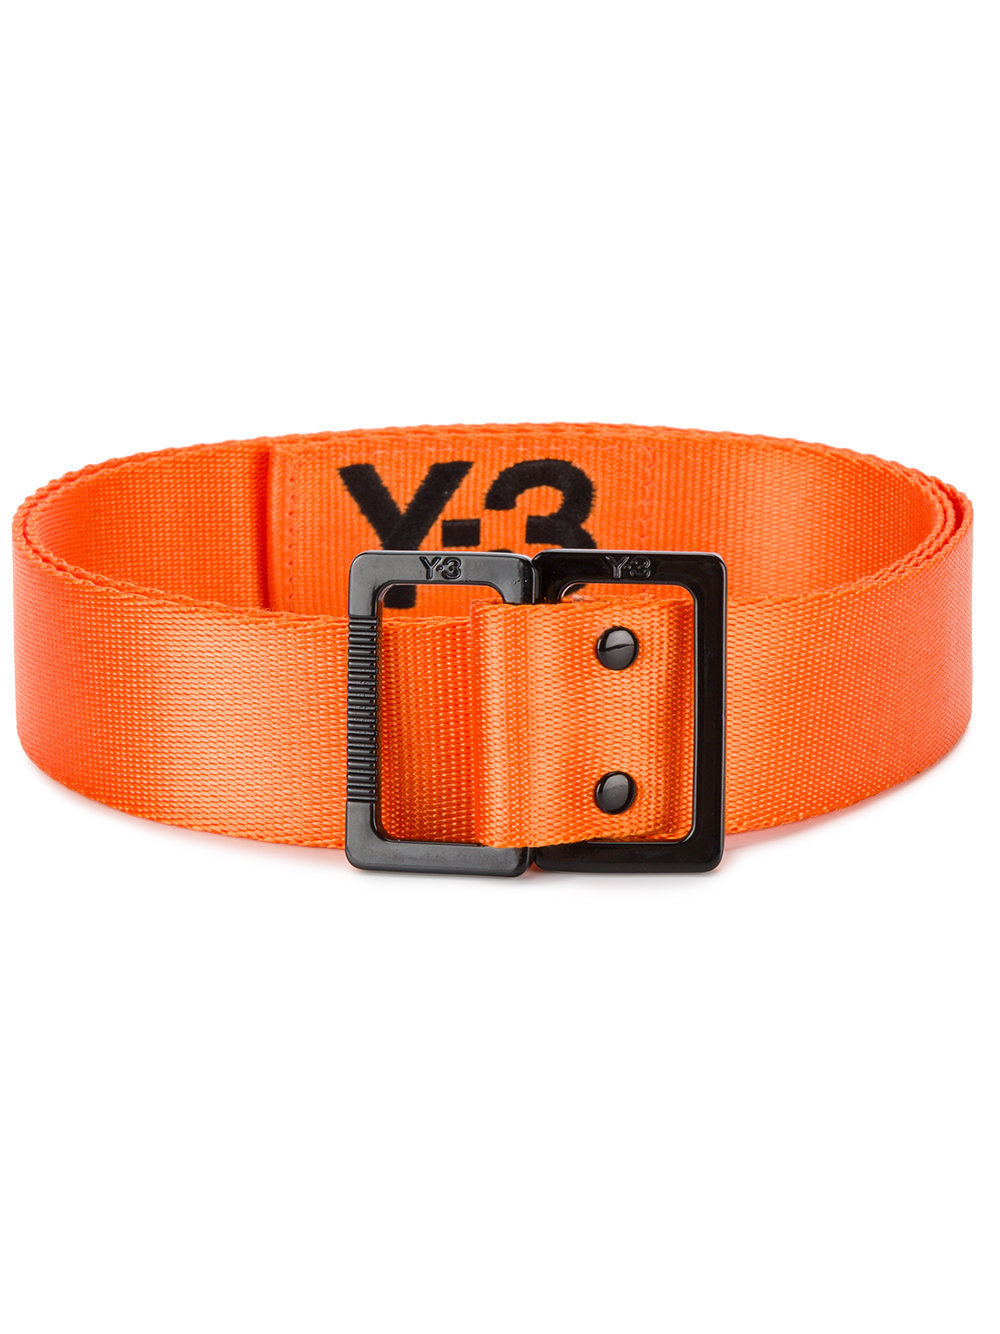 Orange nylon Embroidered woven belt from Y-3.